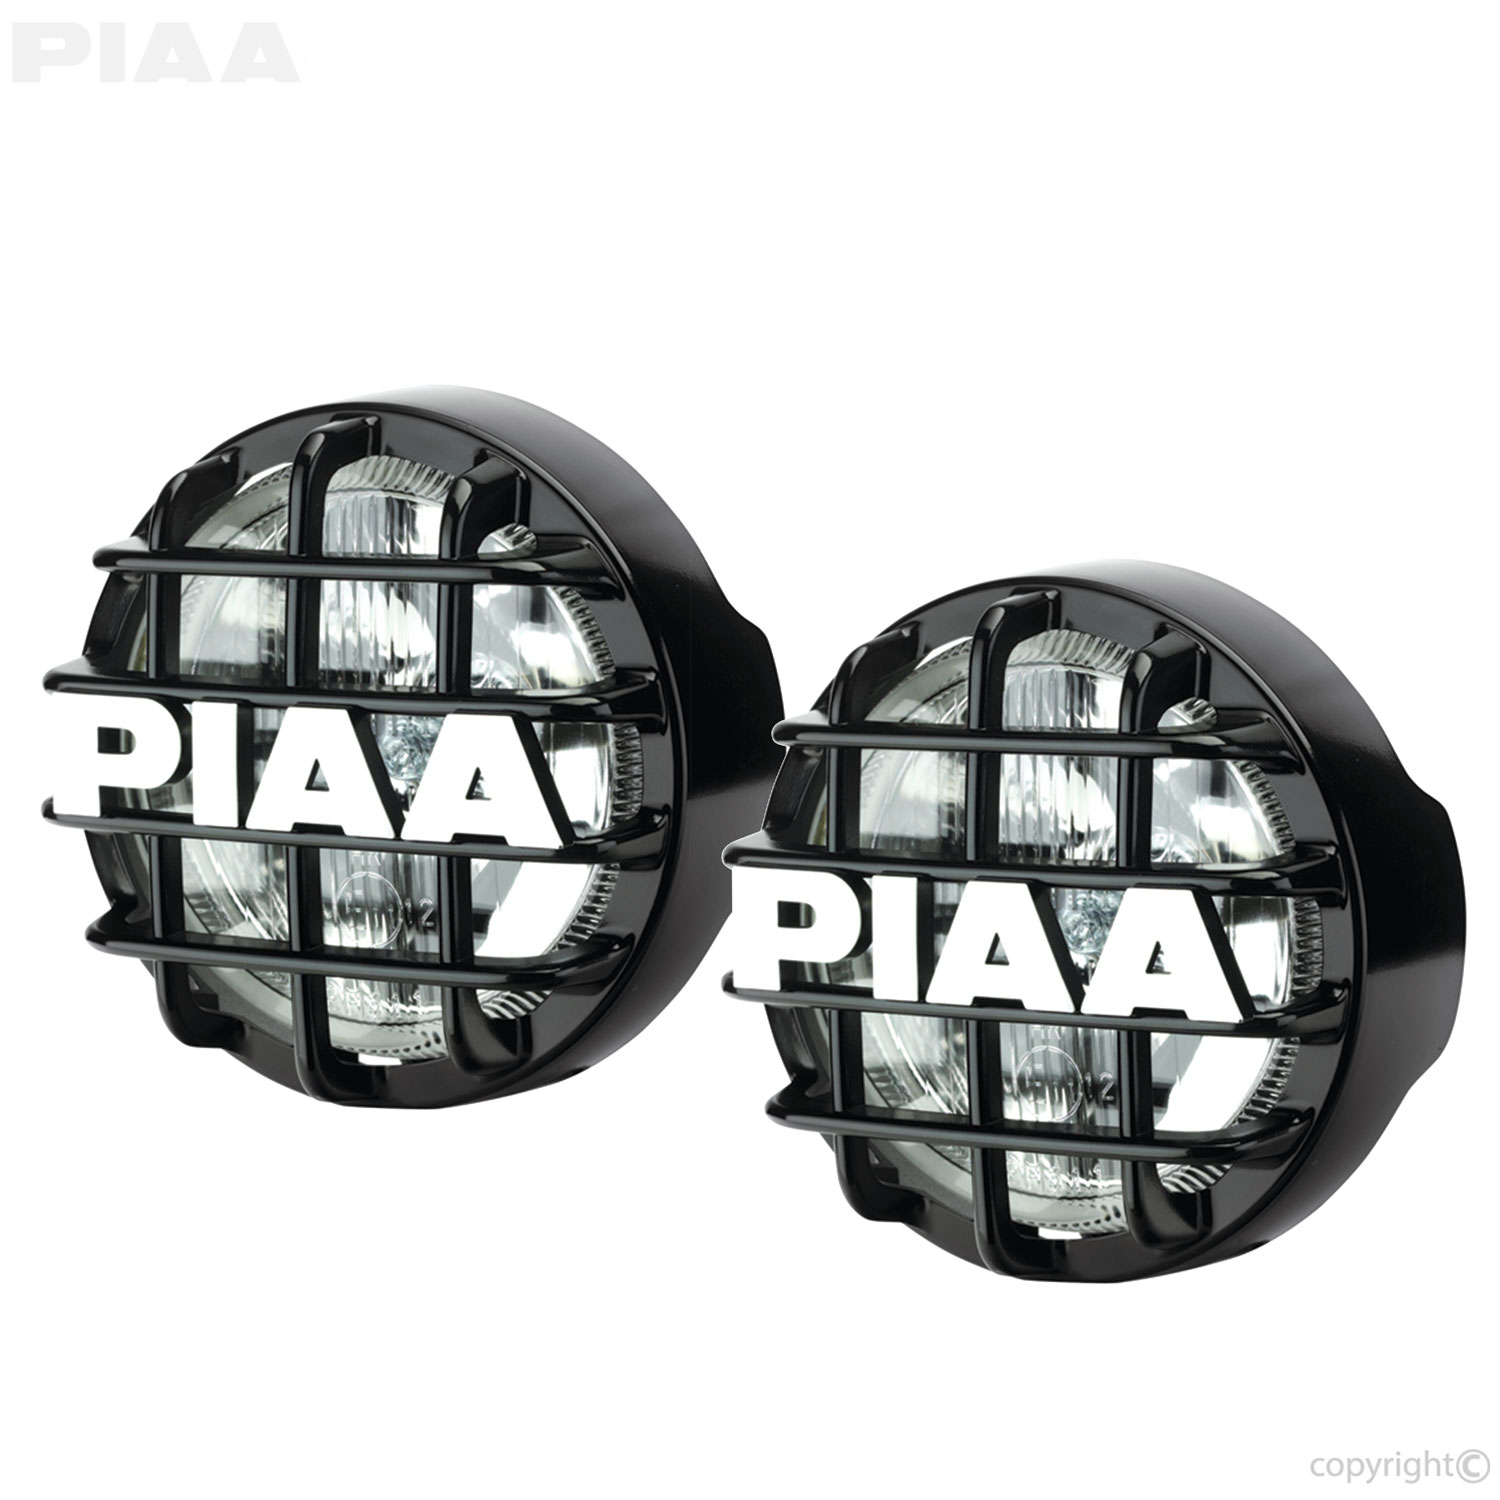 hight resolution of piaa 510 super white driving lamp kit 05164 american autowire wiring harness 510 super white driving